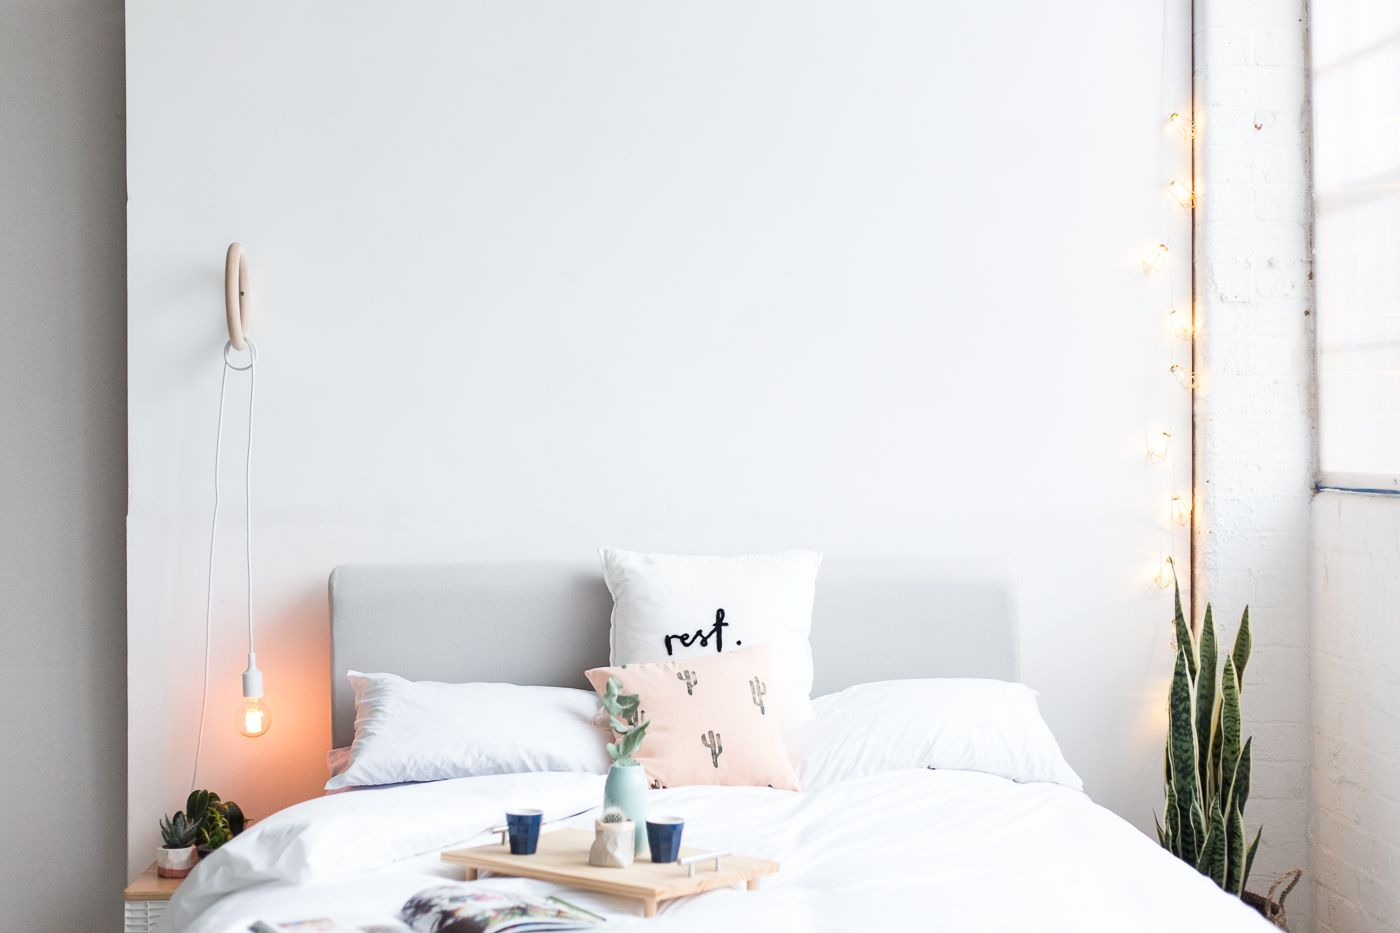 Brighten up your Bedroom Decor with this